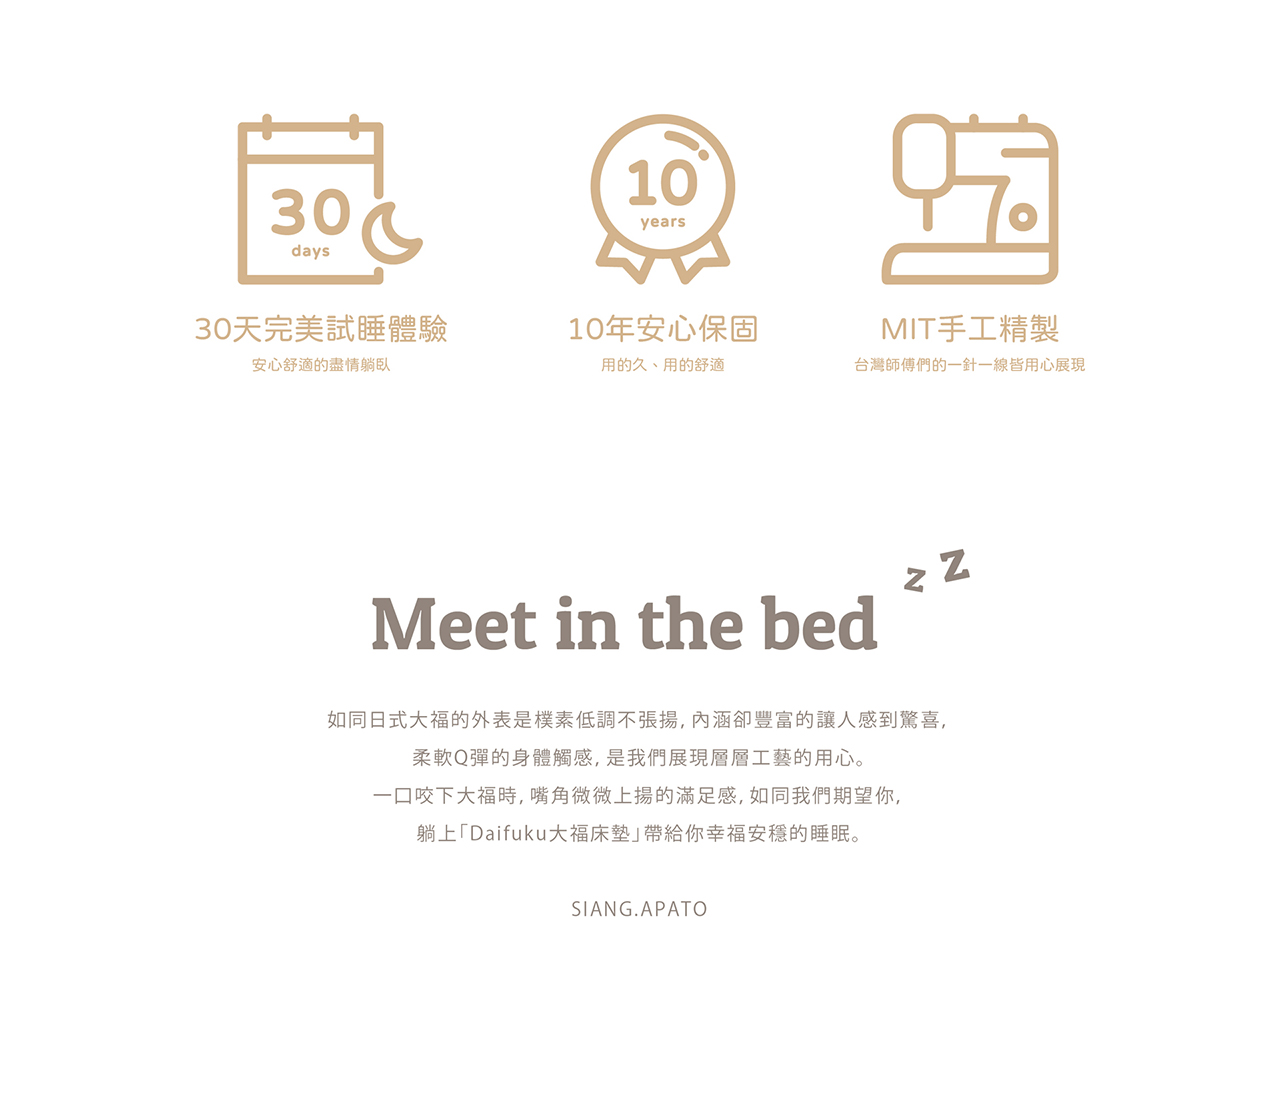 meet in the bed-1